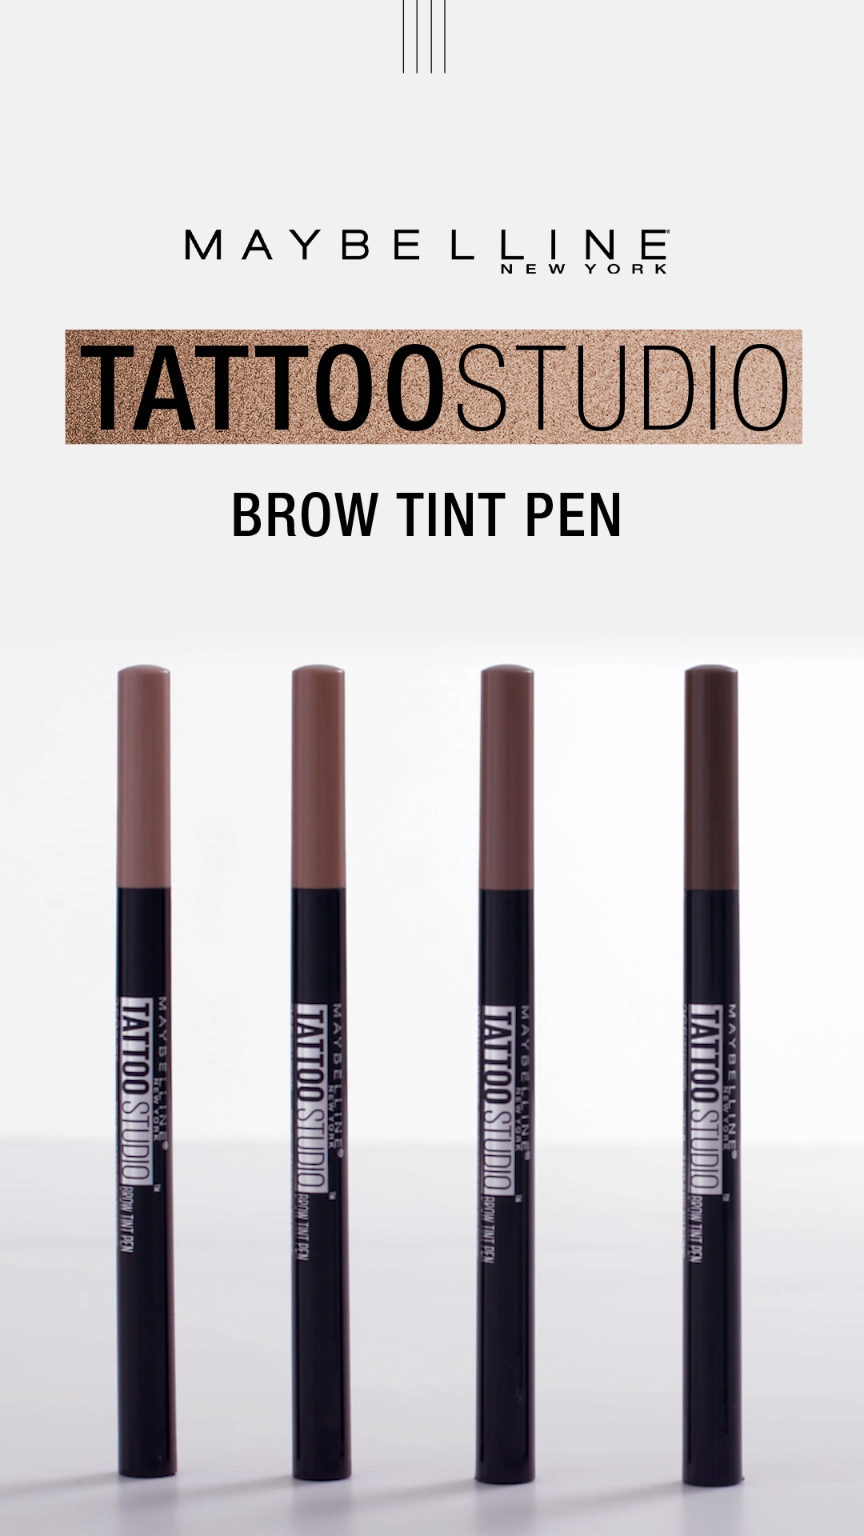 Pin By A B On Makeup Video Brow Tinting Brows Maybelline Tattoo